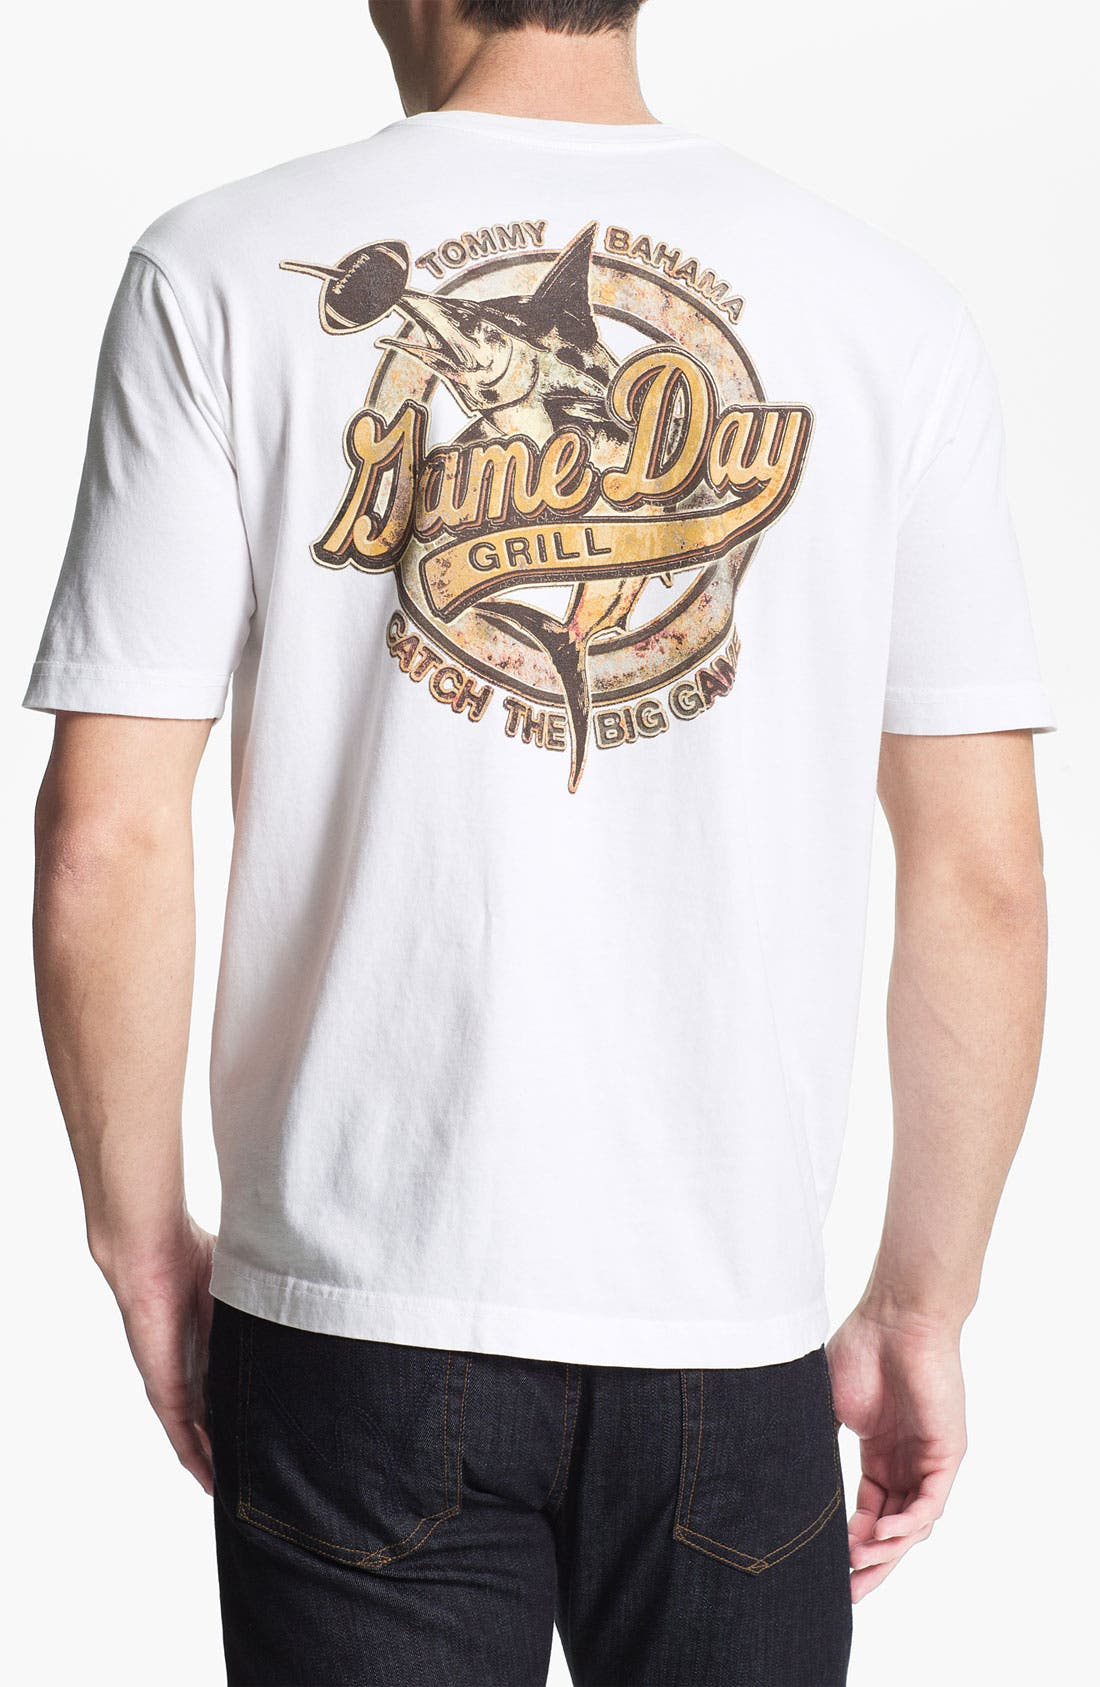 Main Image - Tommy Bahama 'Game Day Grill' T-Shirt